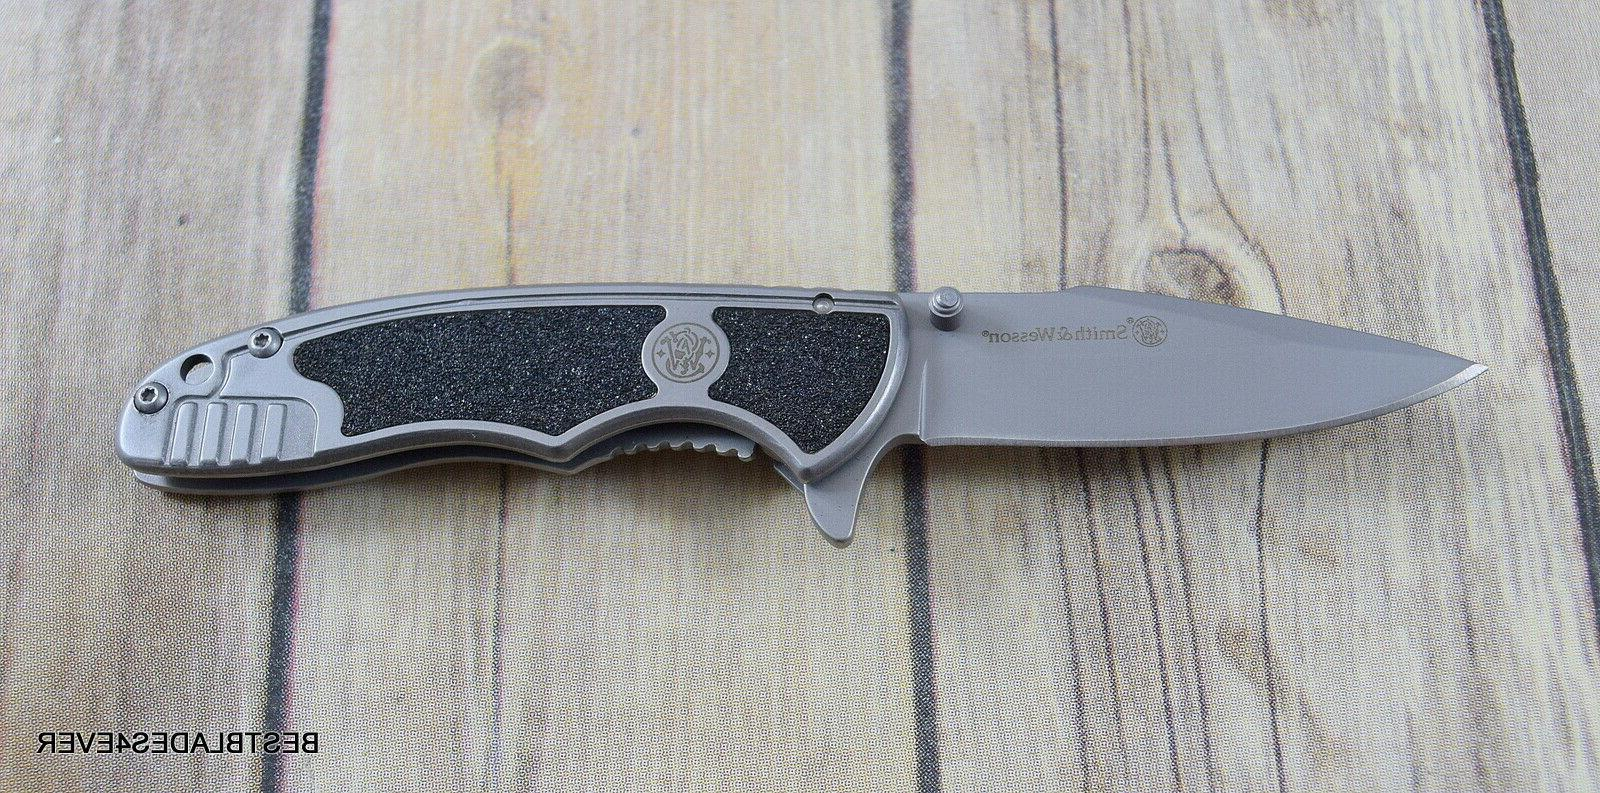 6.25 INCH WESSON LINERLOCK WITH